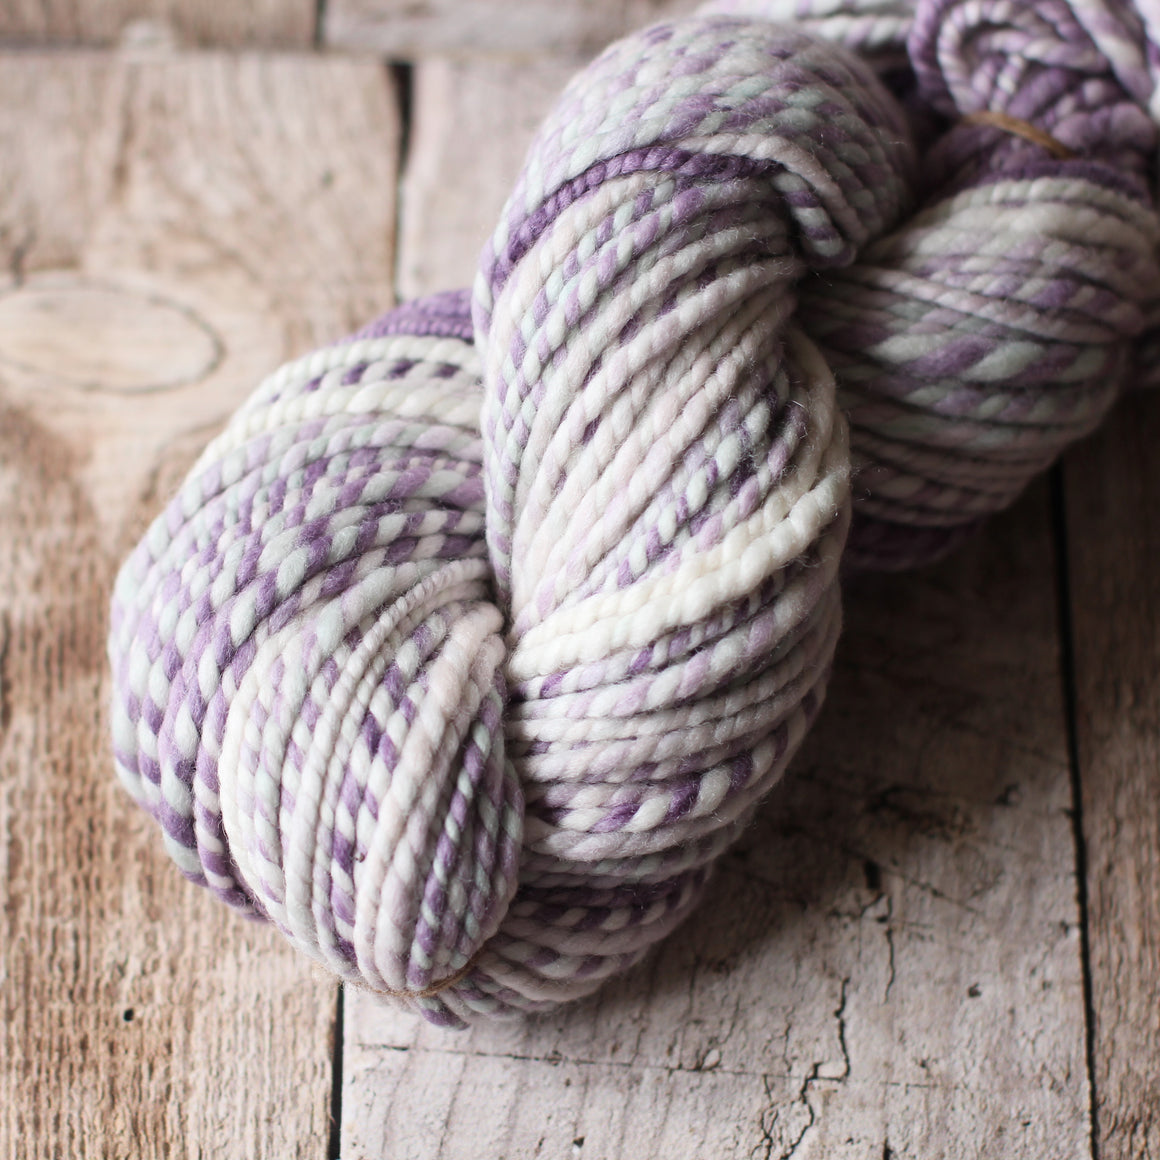 Handspun Yarn - Charmaine on Australian Merino Wool